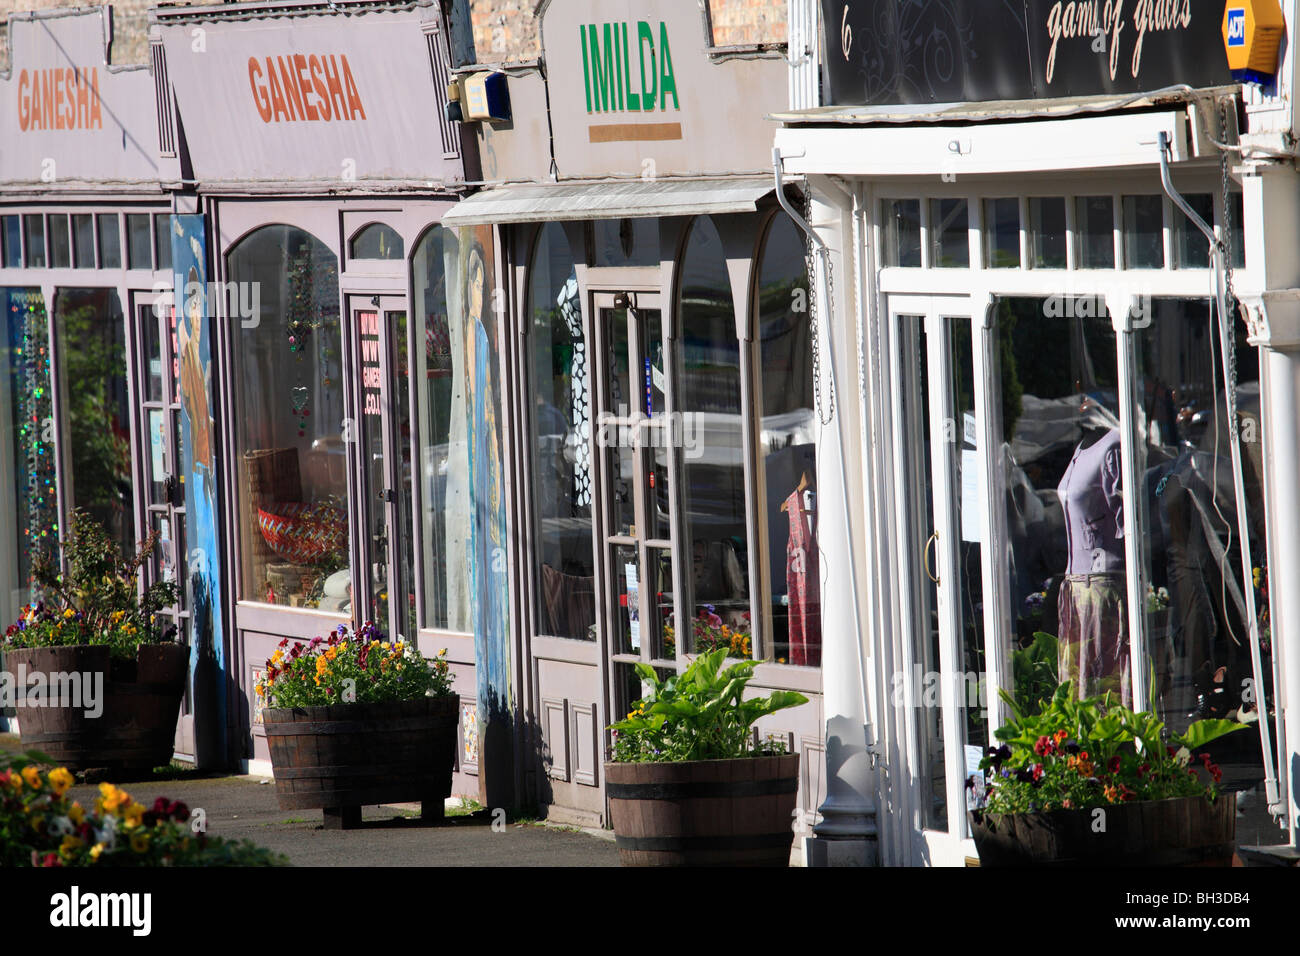 A parade of old but trendy shop fronts with flower containers outside and colourful fascias. Window displays partially - Stock Image